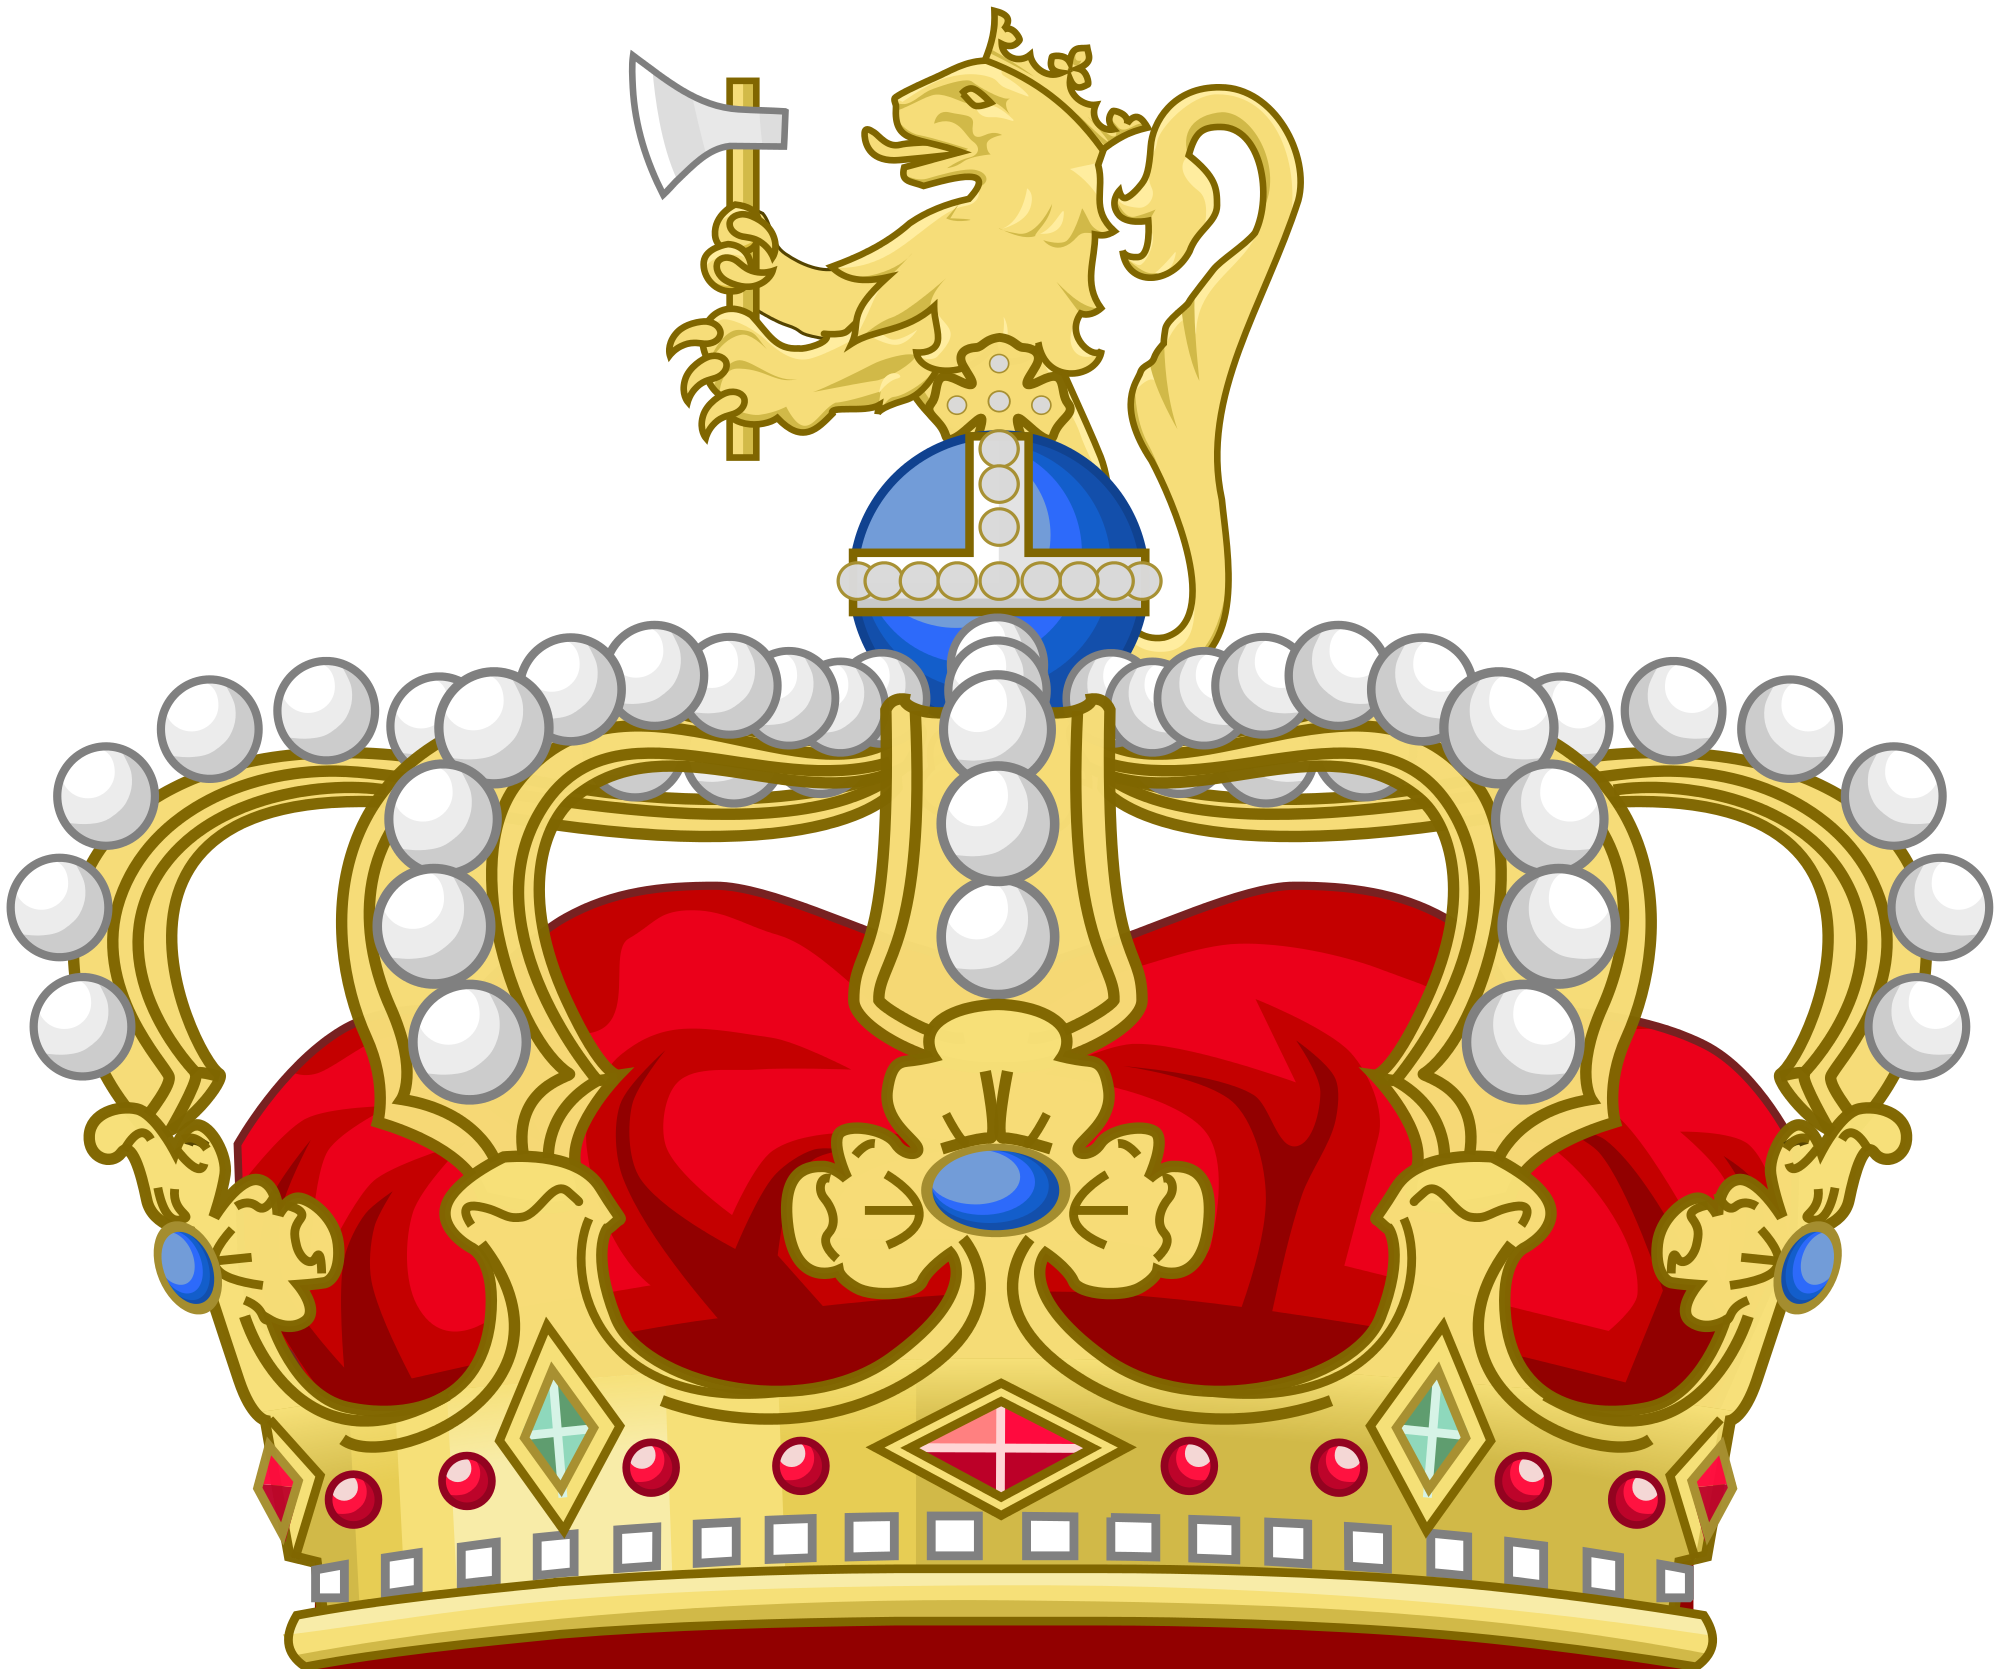 Norwegian crown google search. Crowns clipart female royal